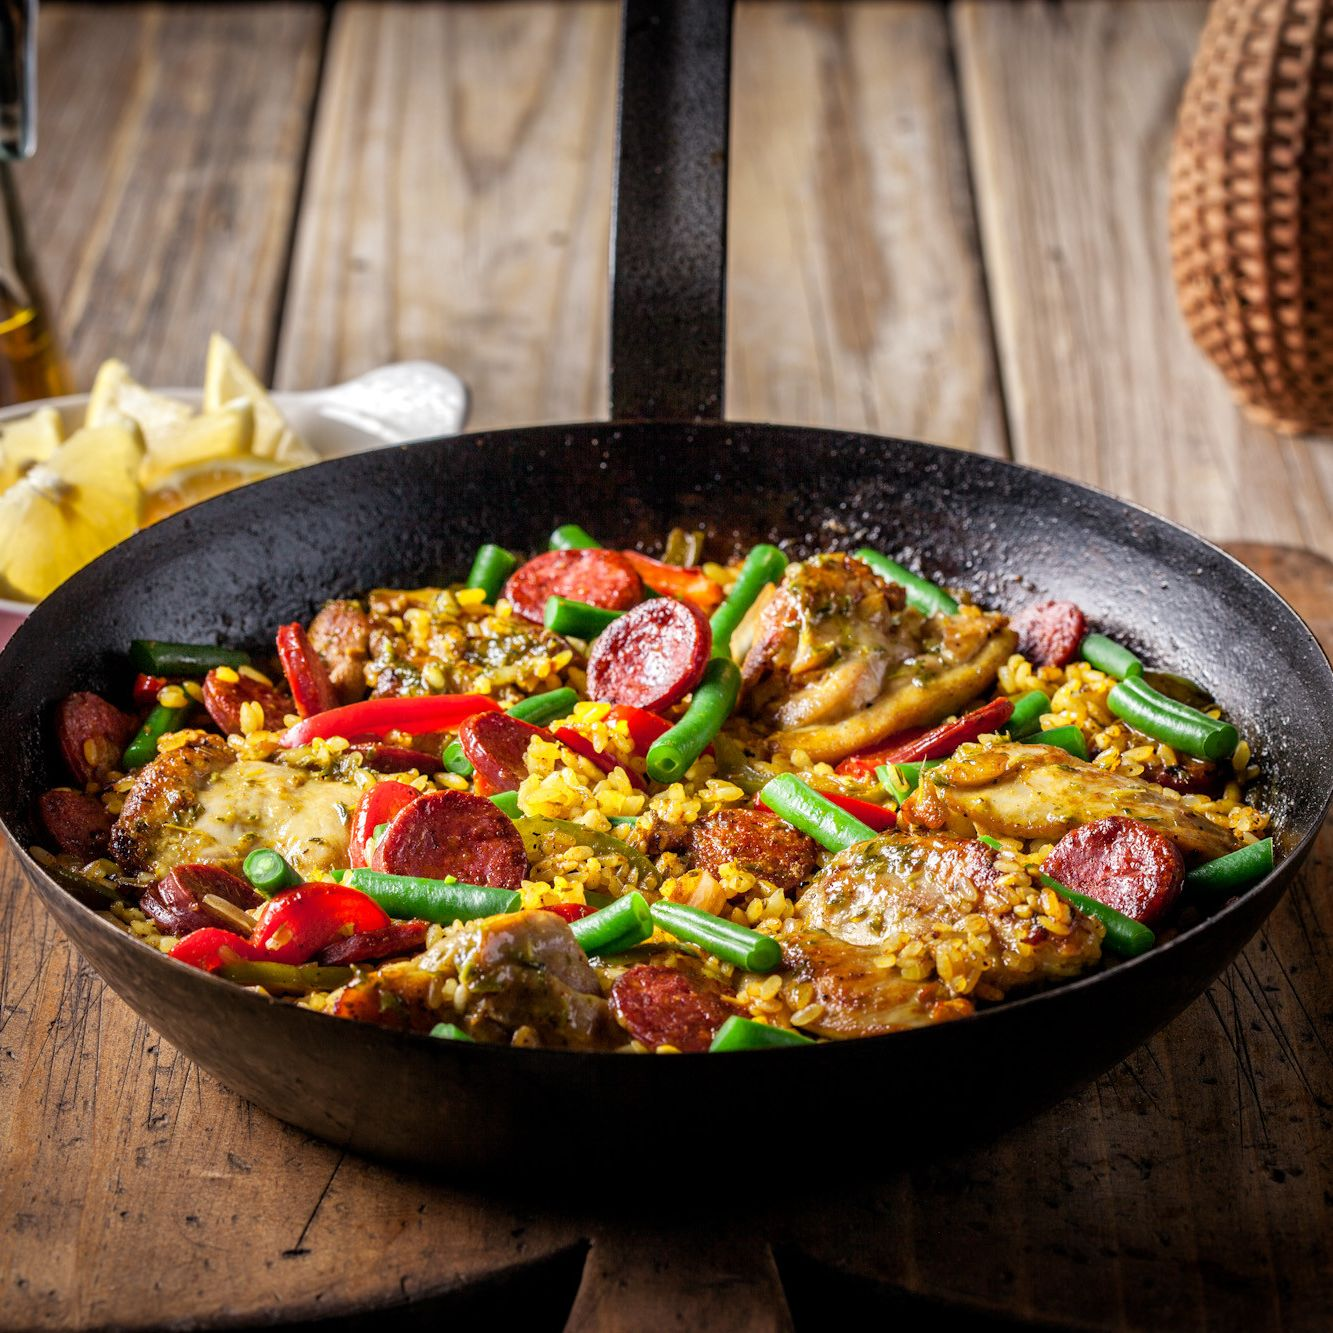 Garlic Chicken & Pork Paella